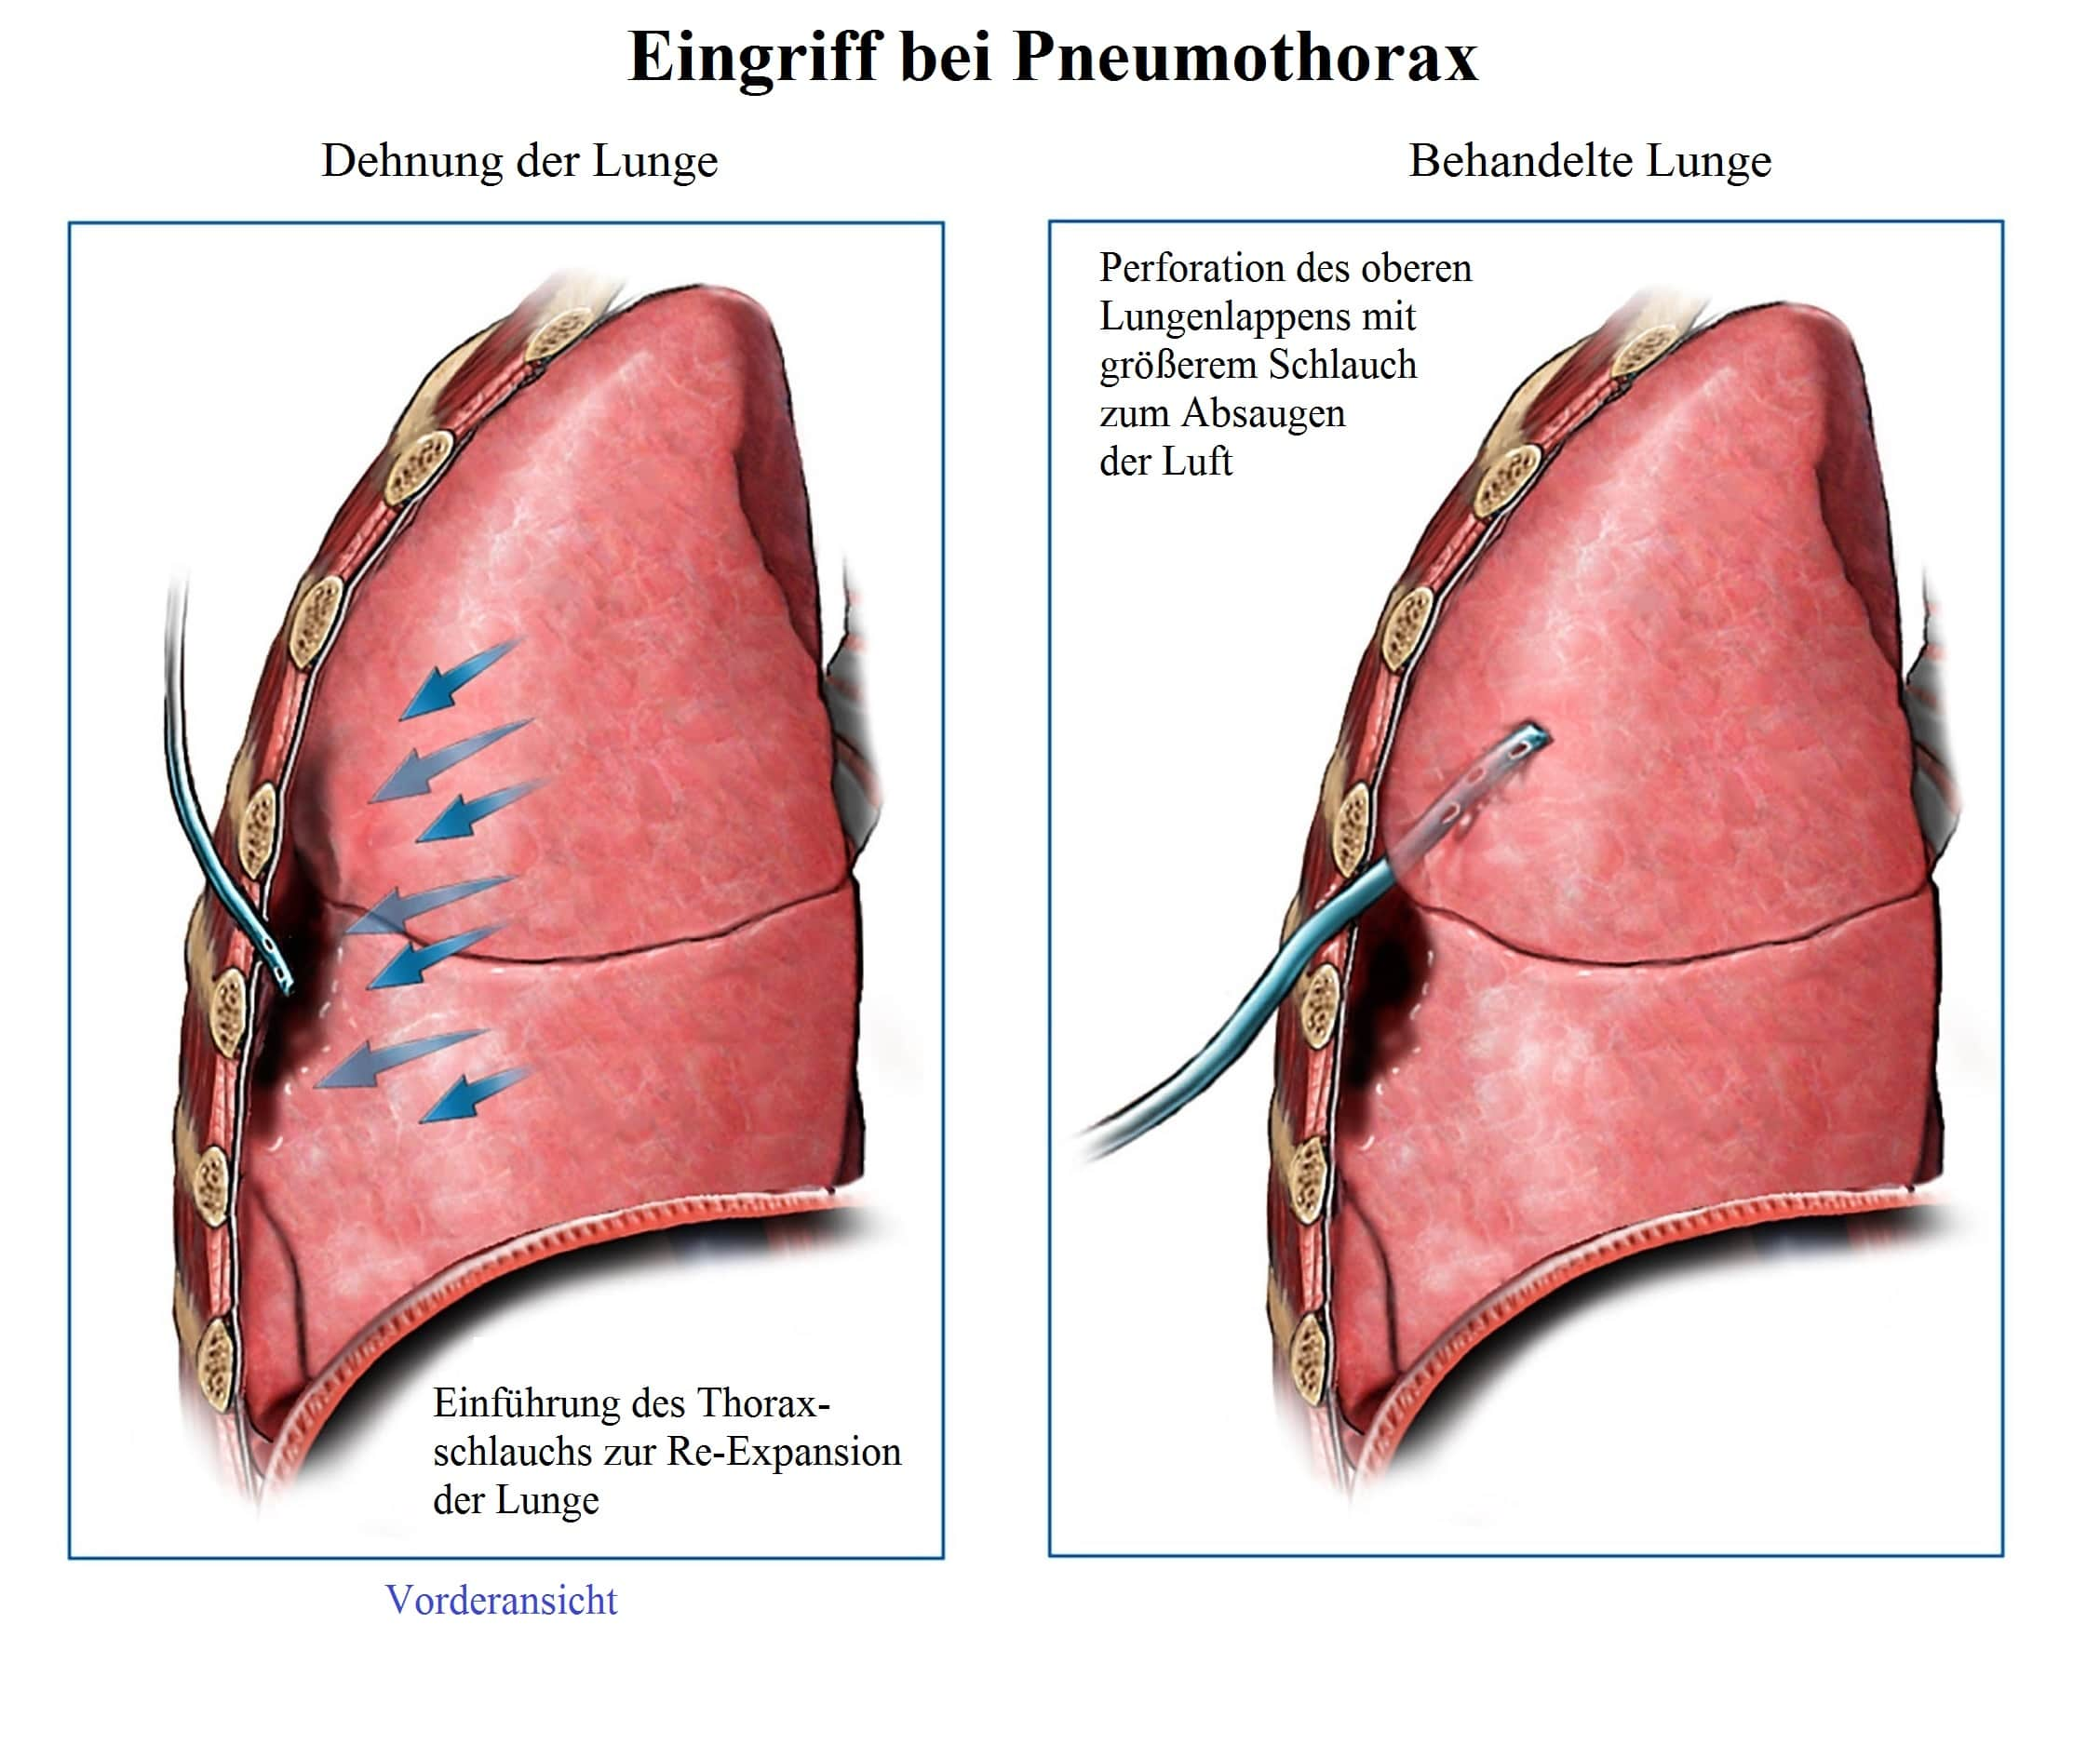 Eingriff, Pneumothorax, Schlauch, Expansion